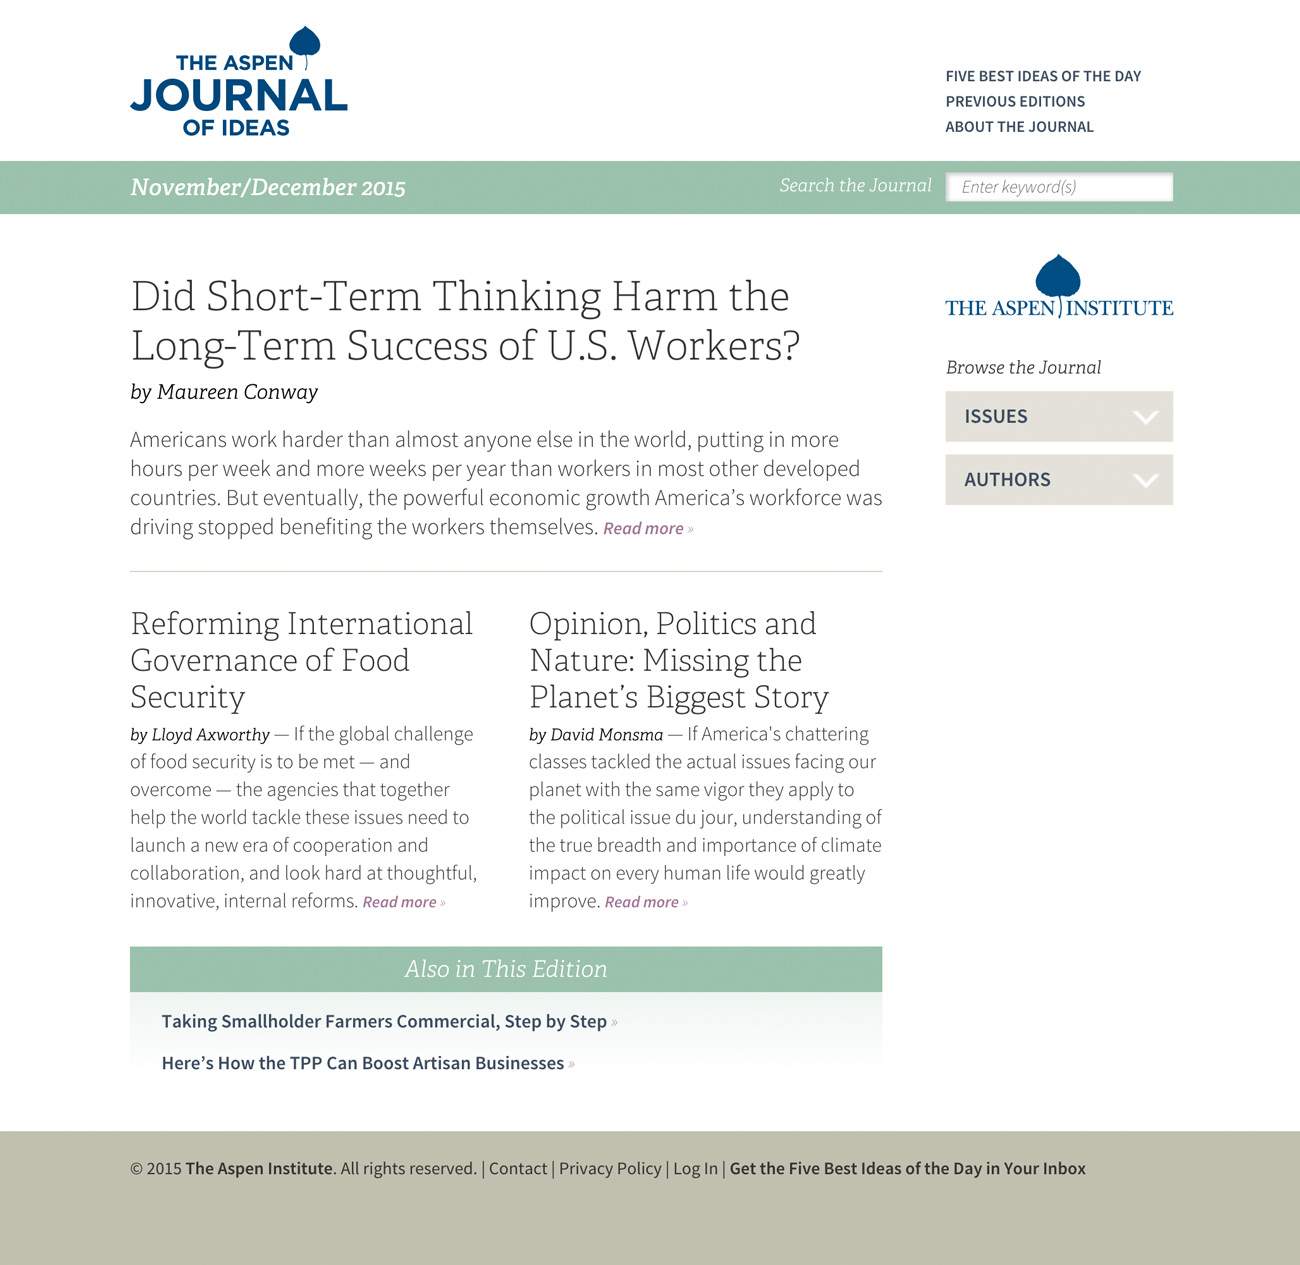 The Aspen Journal of Ideas, Screen 1